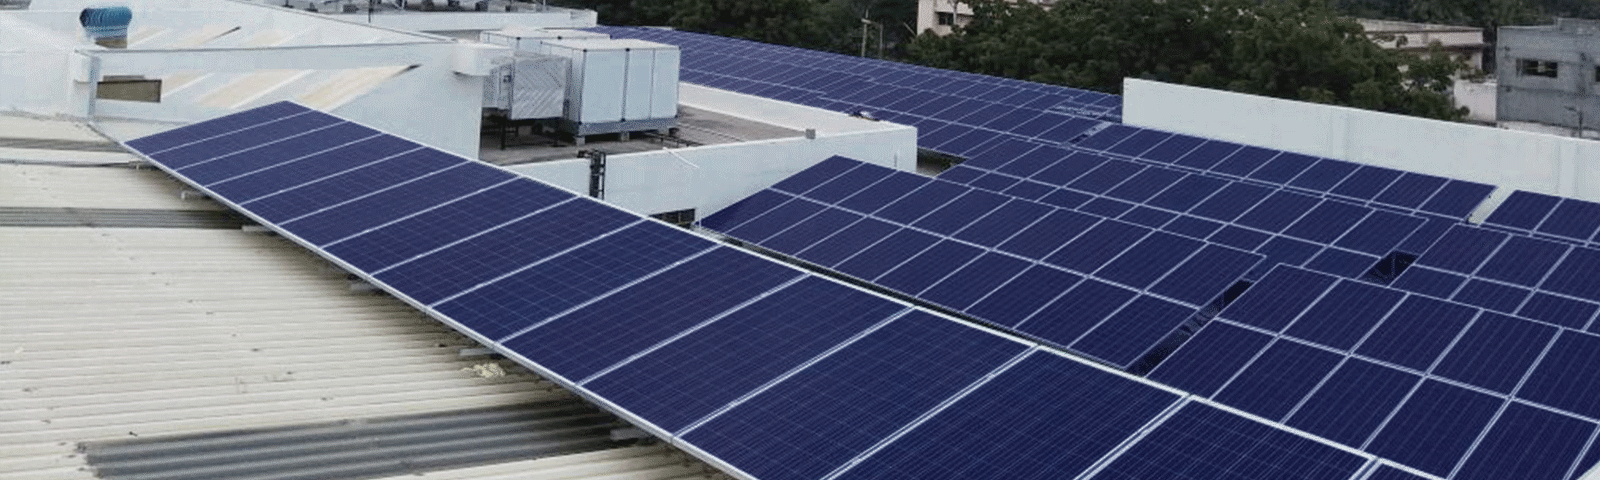 Waaree has now supplied more than 3GW of solar modules globally. Image: Waaree.